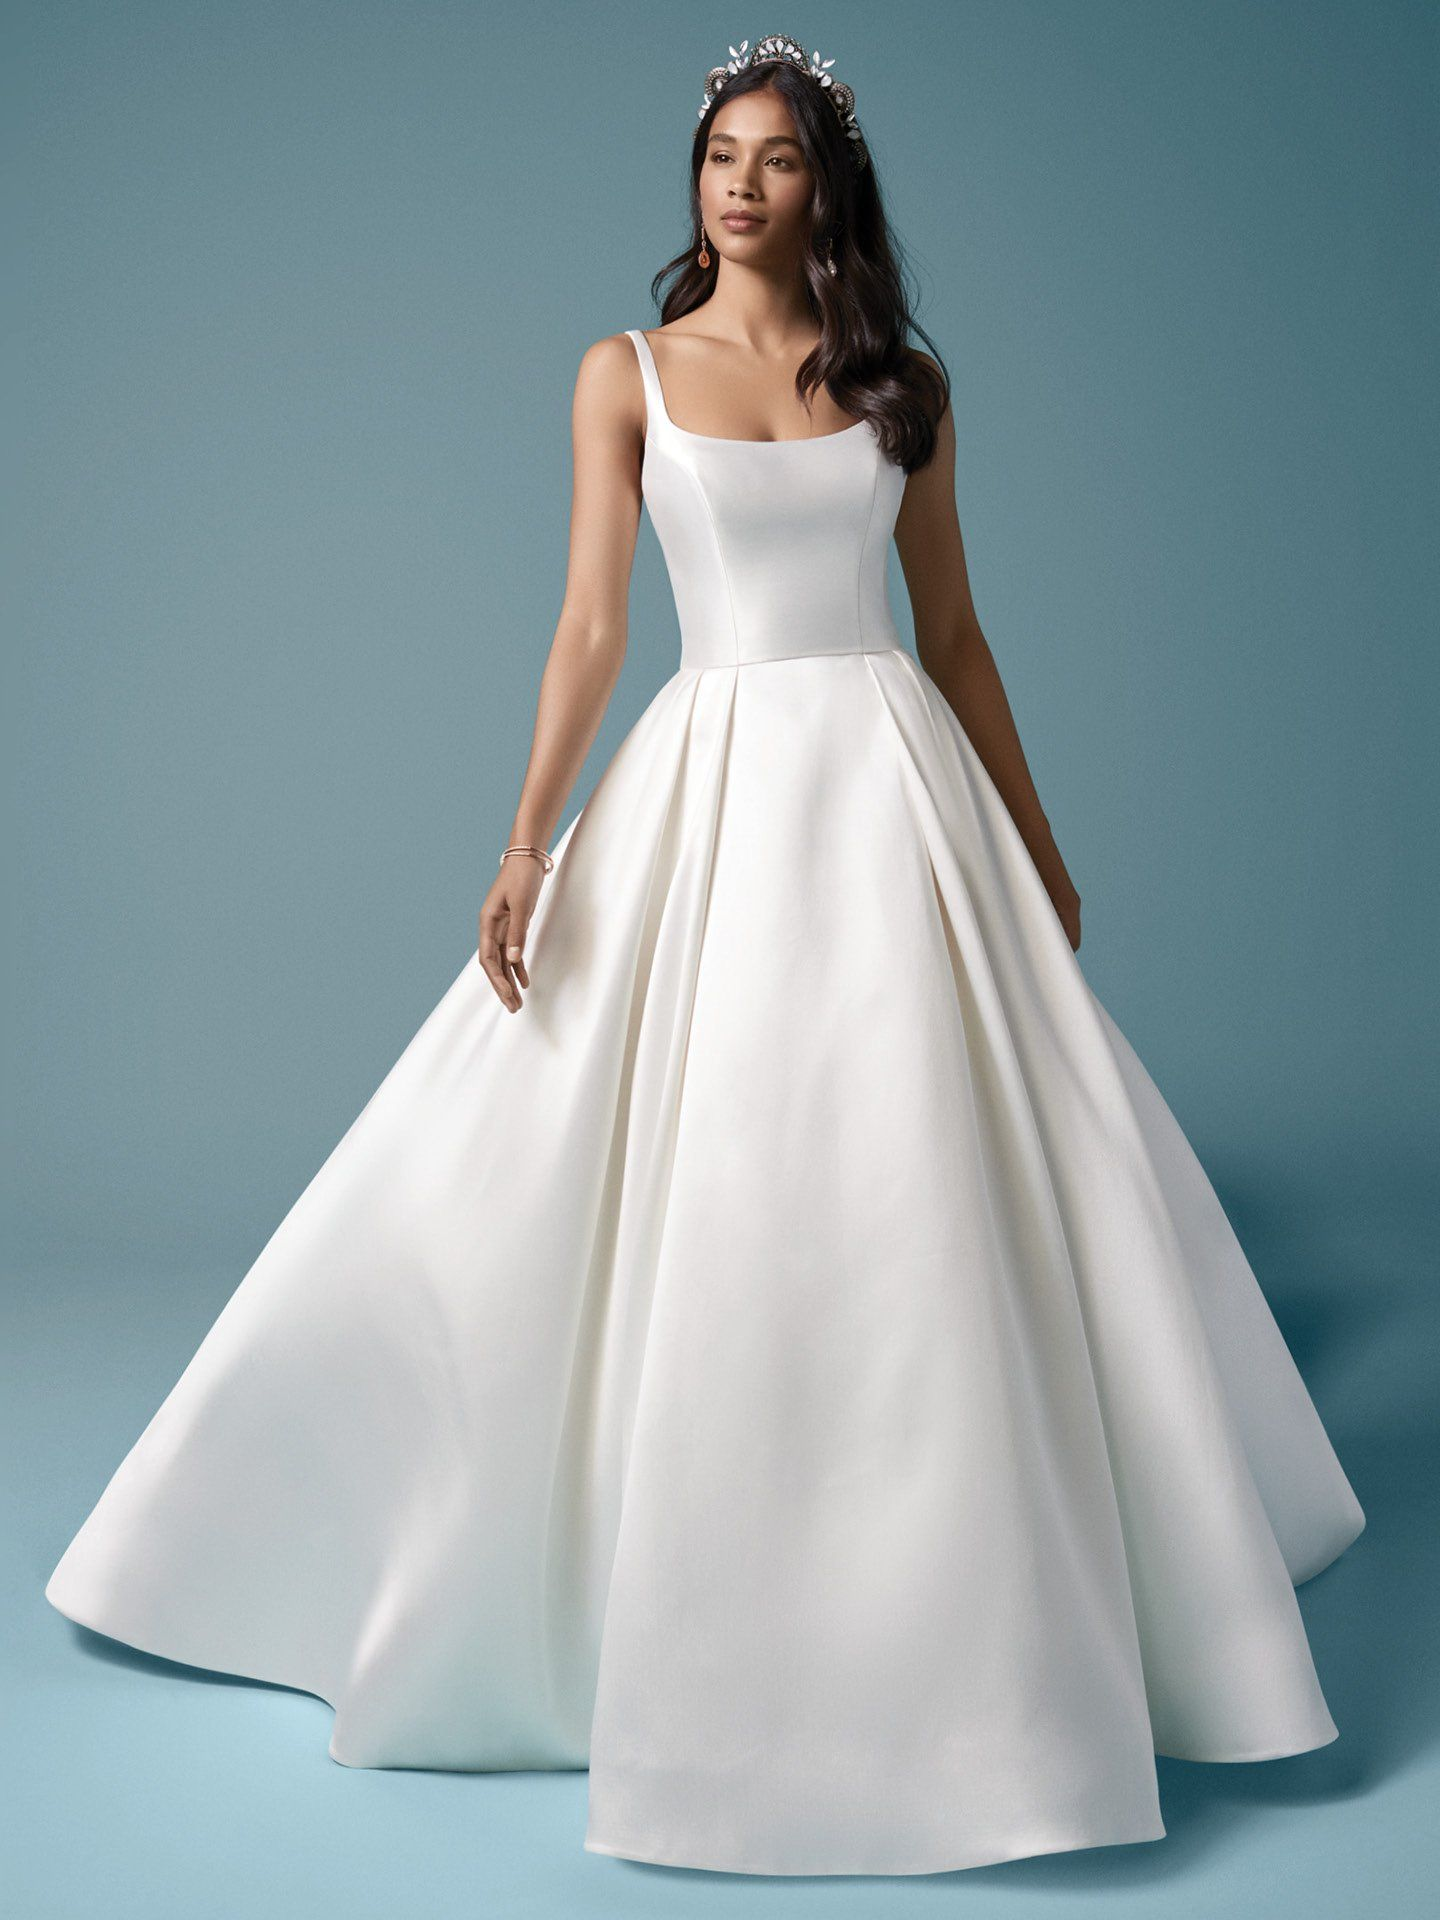 SELENA by Maggie Sottero Wedding Dresses -   18 dress Simple pictures ideas